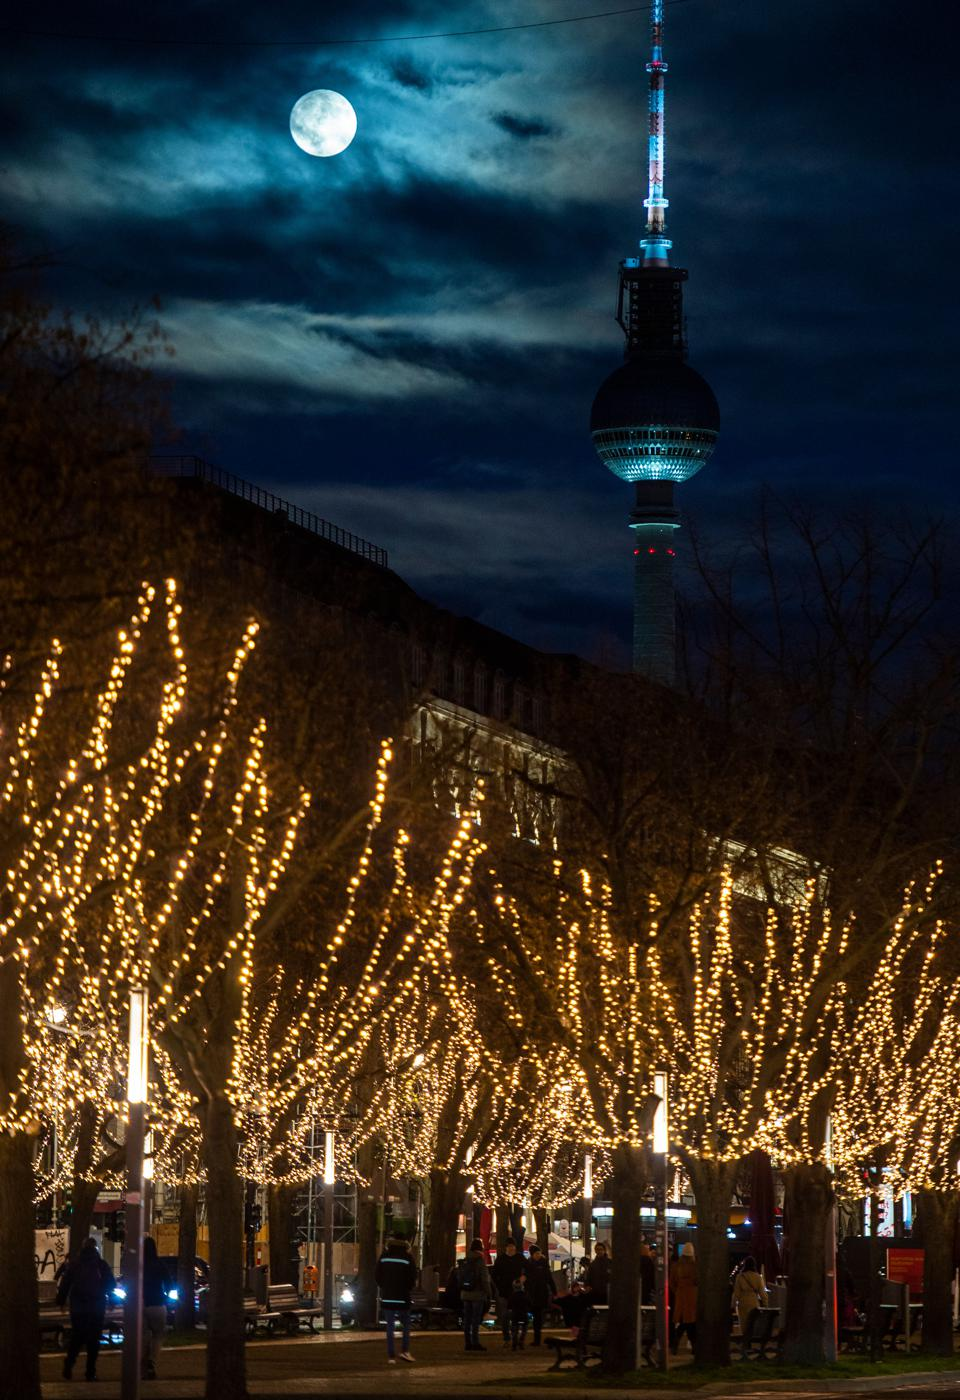 Full moon in GERMANY-CHRISTMAS